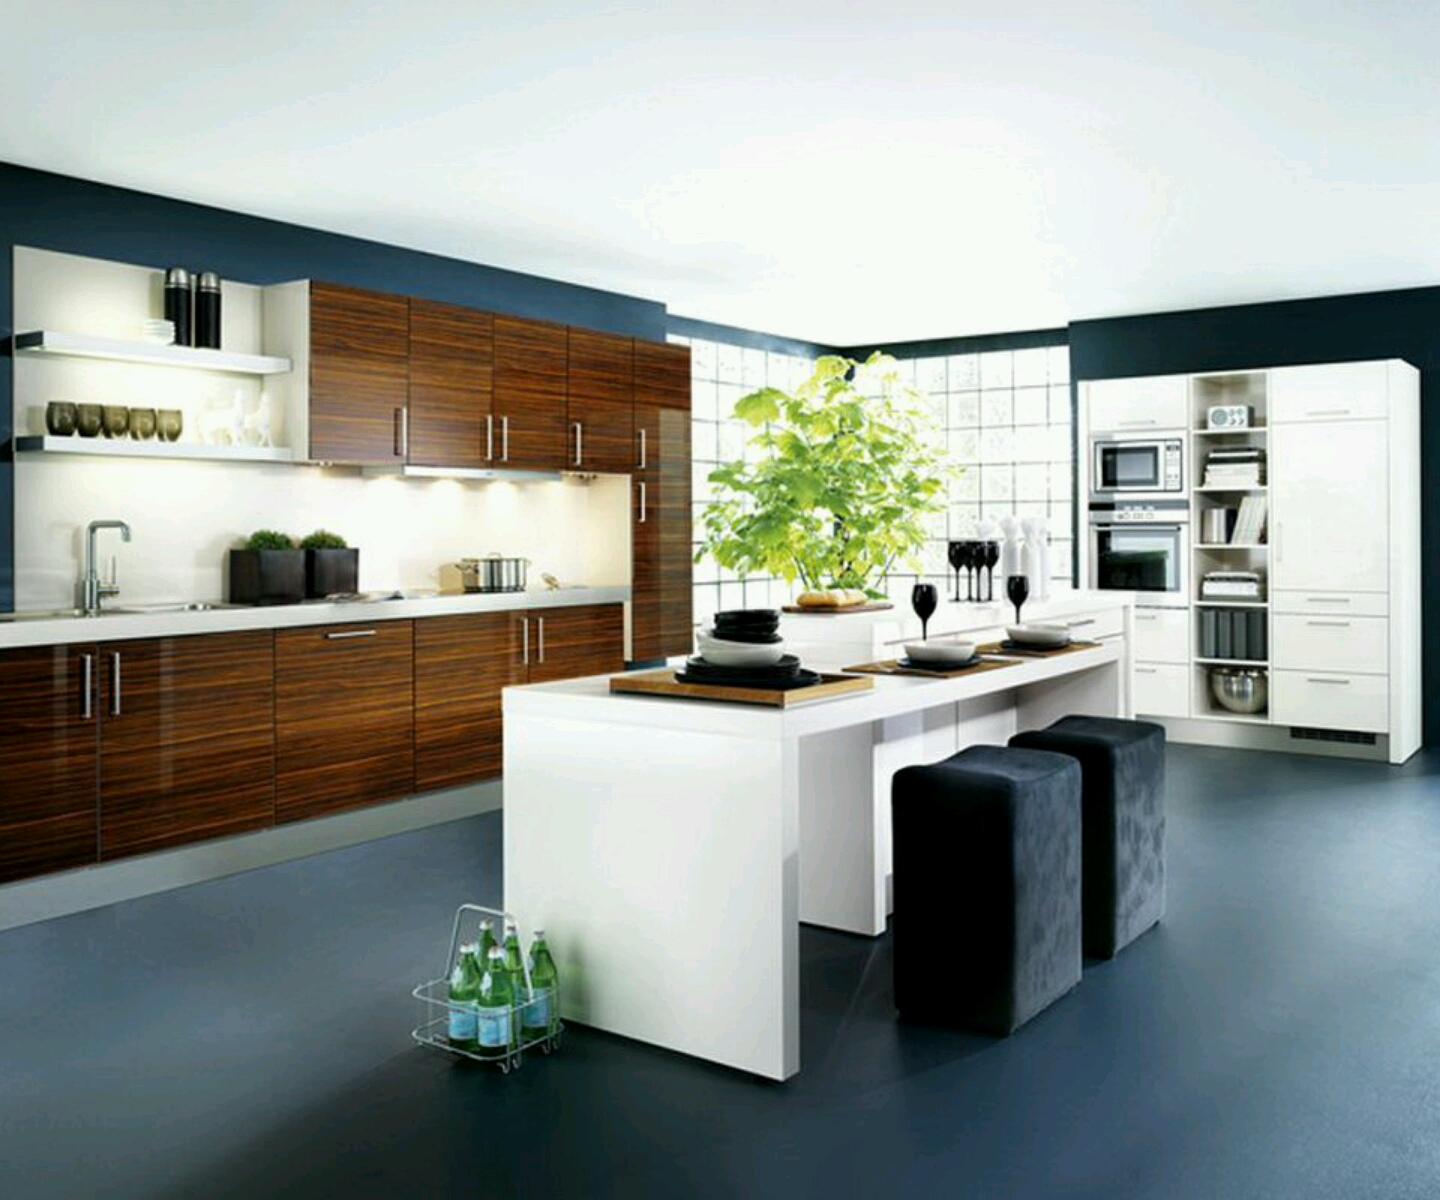 design kitchen modern new home designs kitchen cabinets designs modern 503